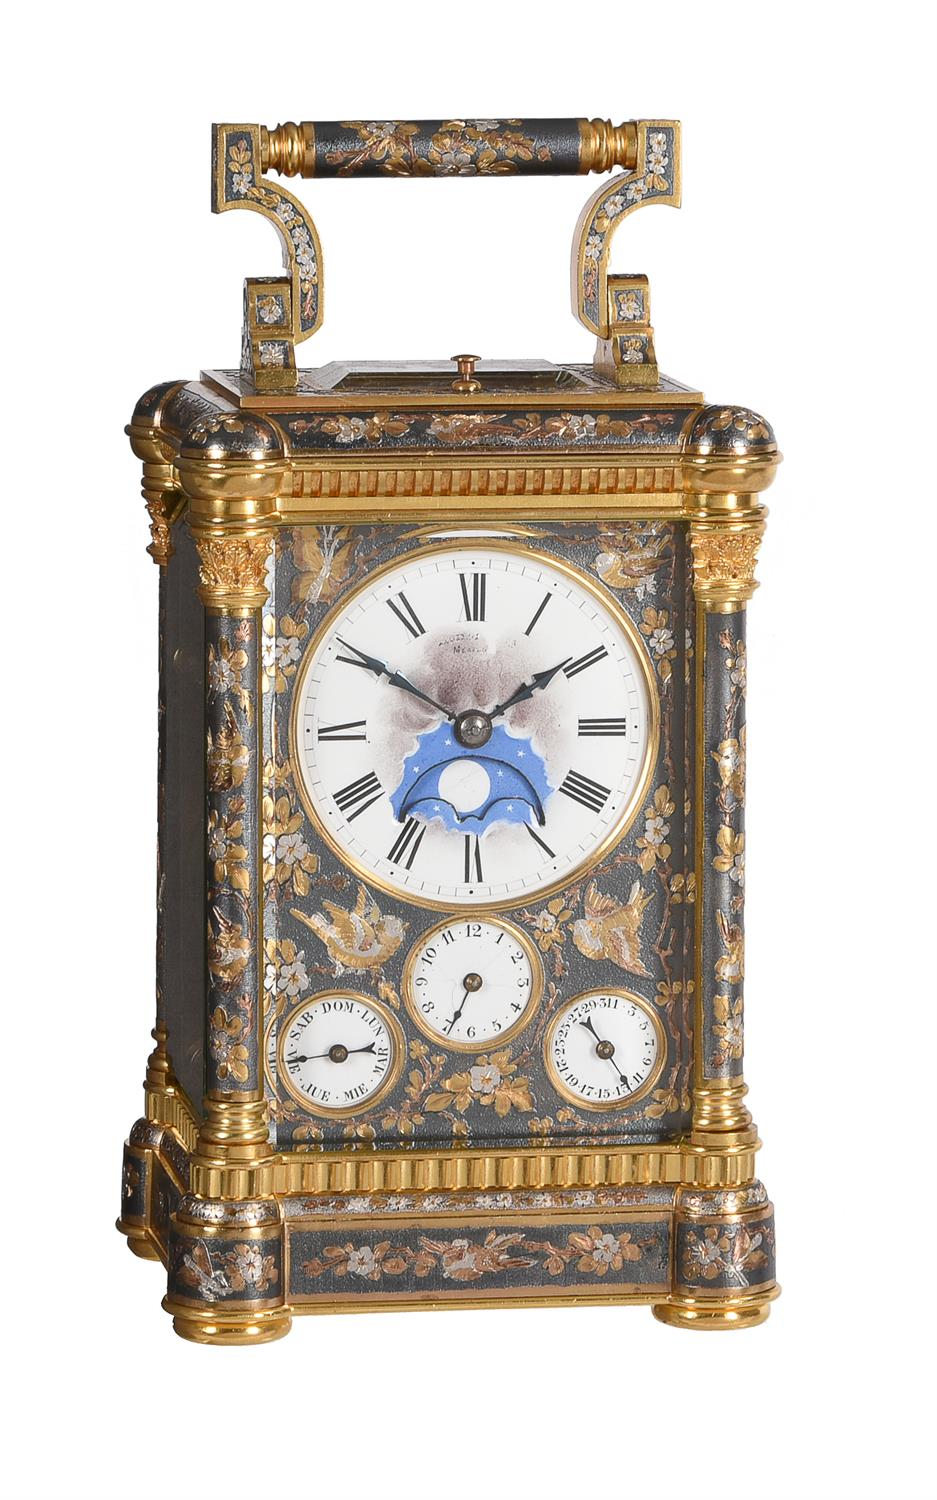 A fine multi-colour grande-sonnerie striking and repeating moonphase calendar alarm carriage clock